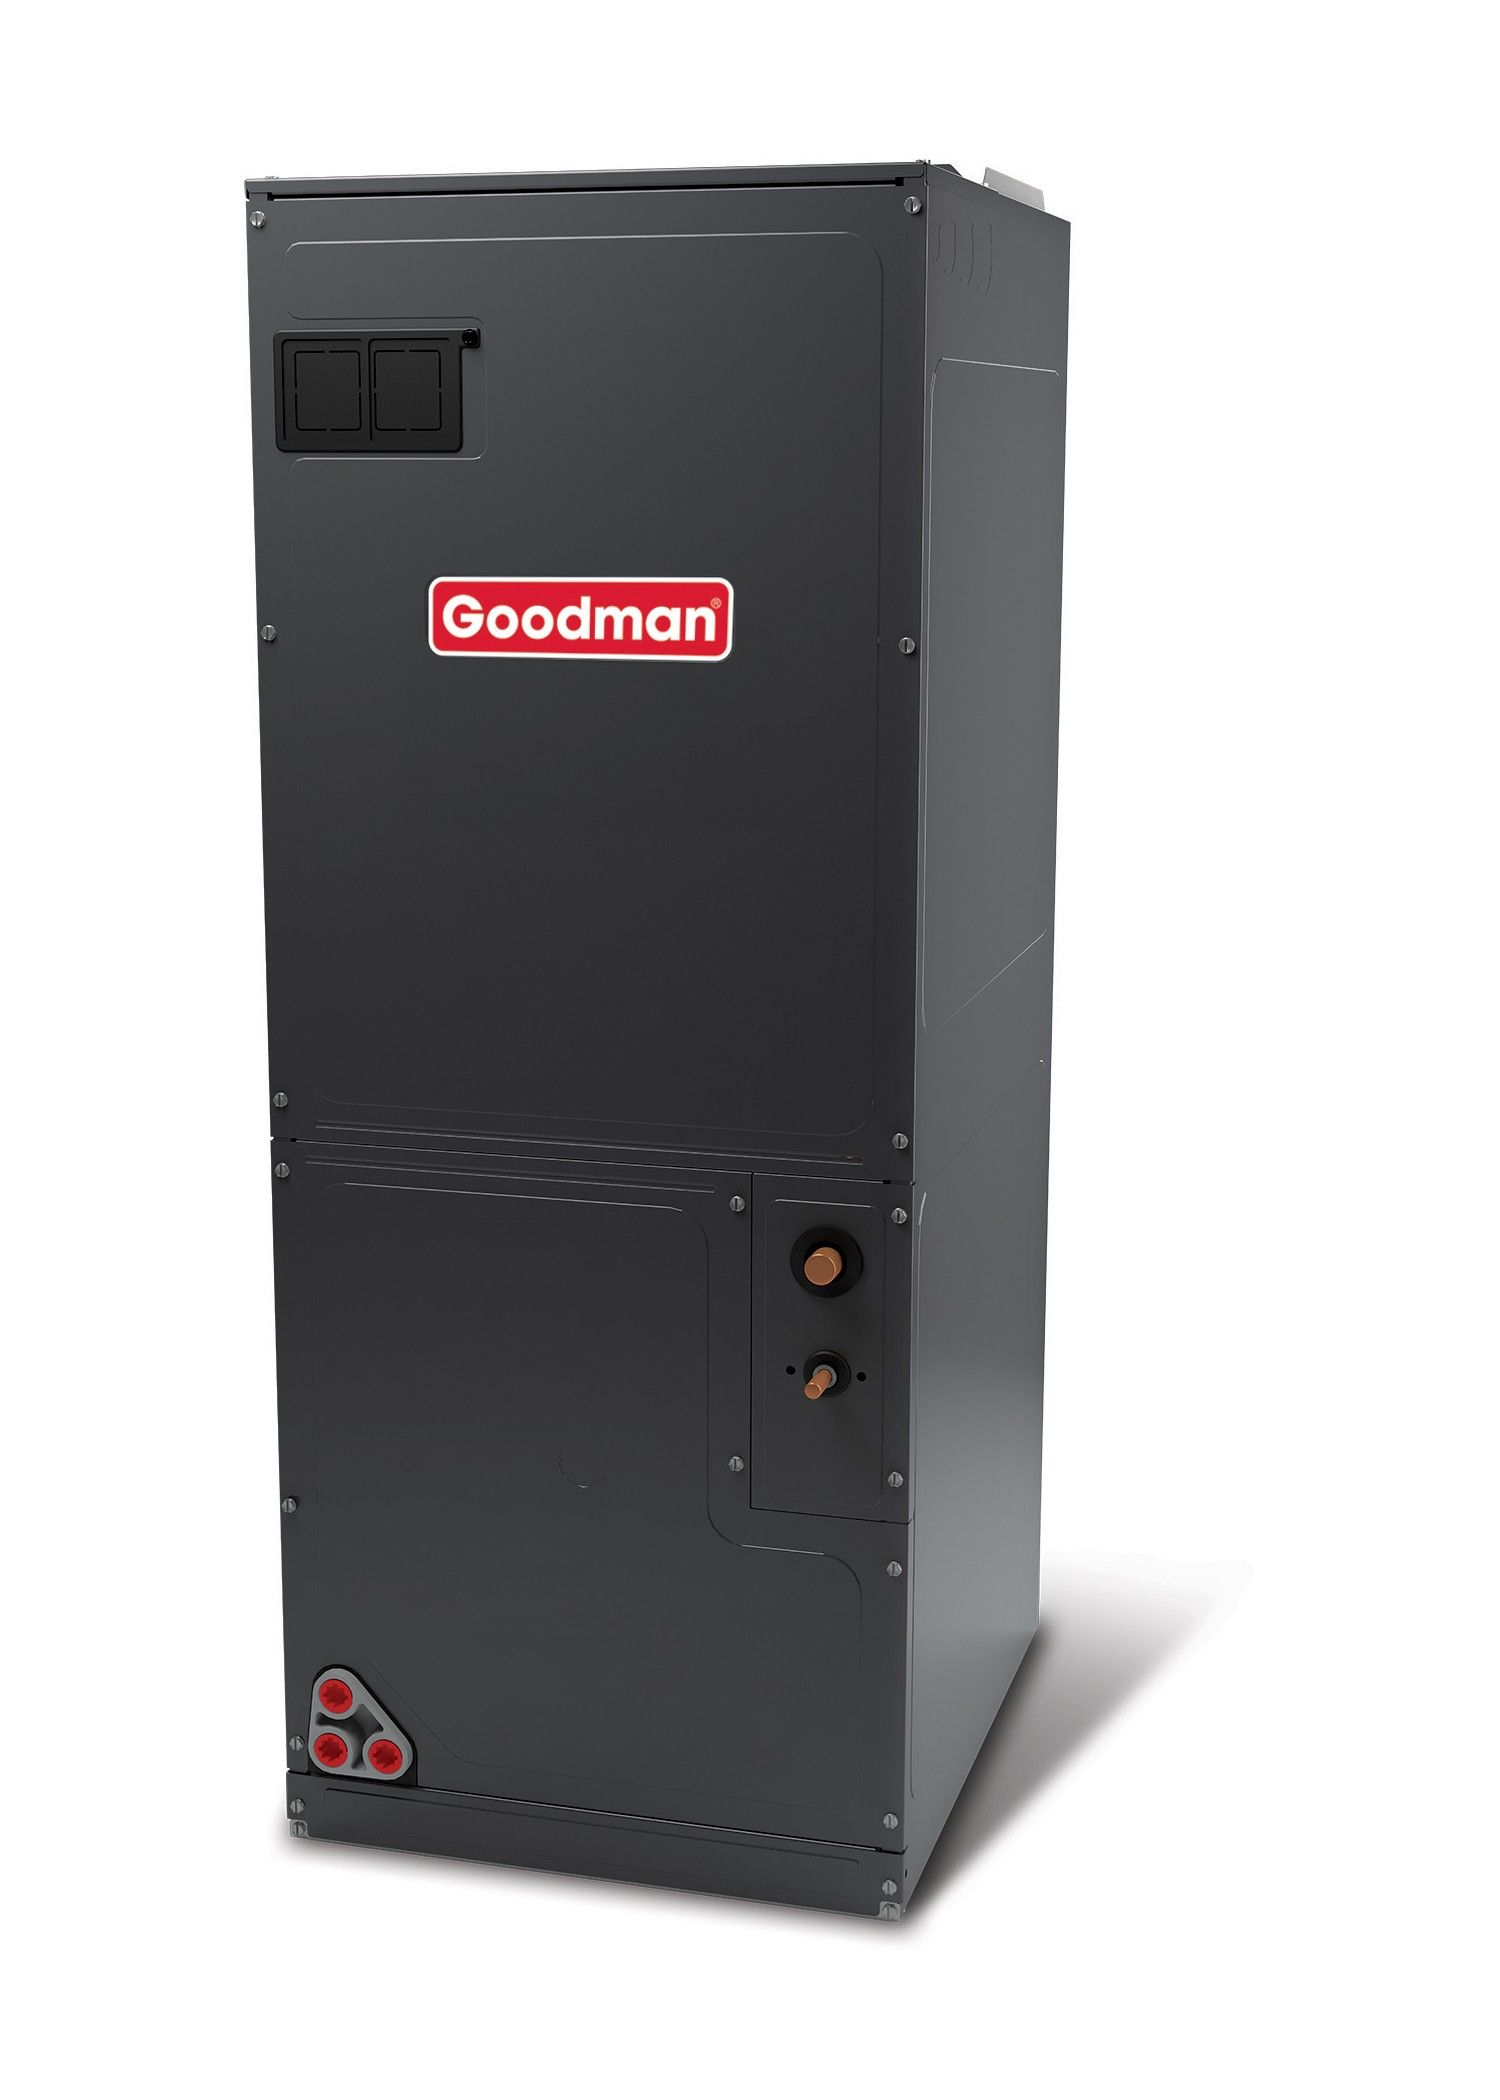 Goodman 2.0 Ton ASPT High Efficiency Multiposition Air Handler